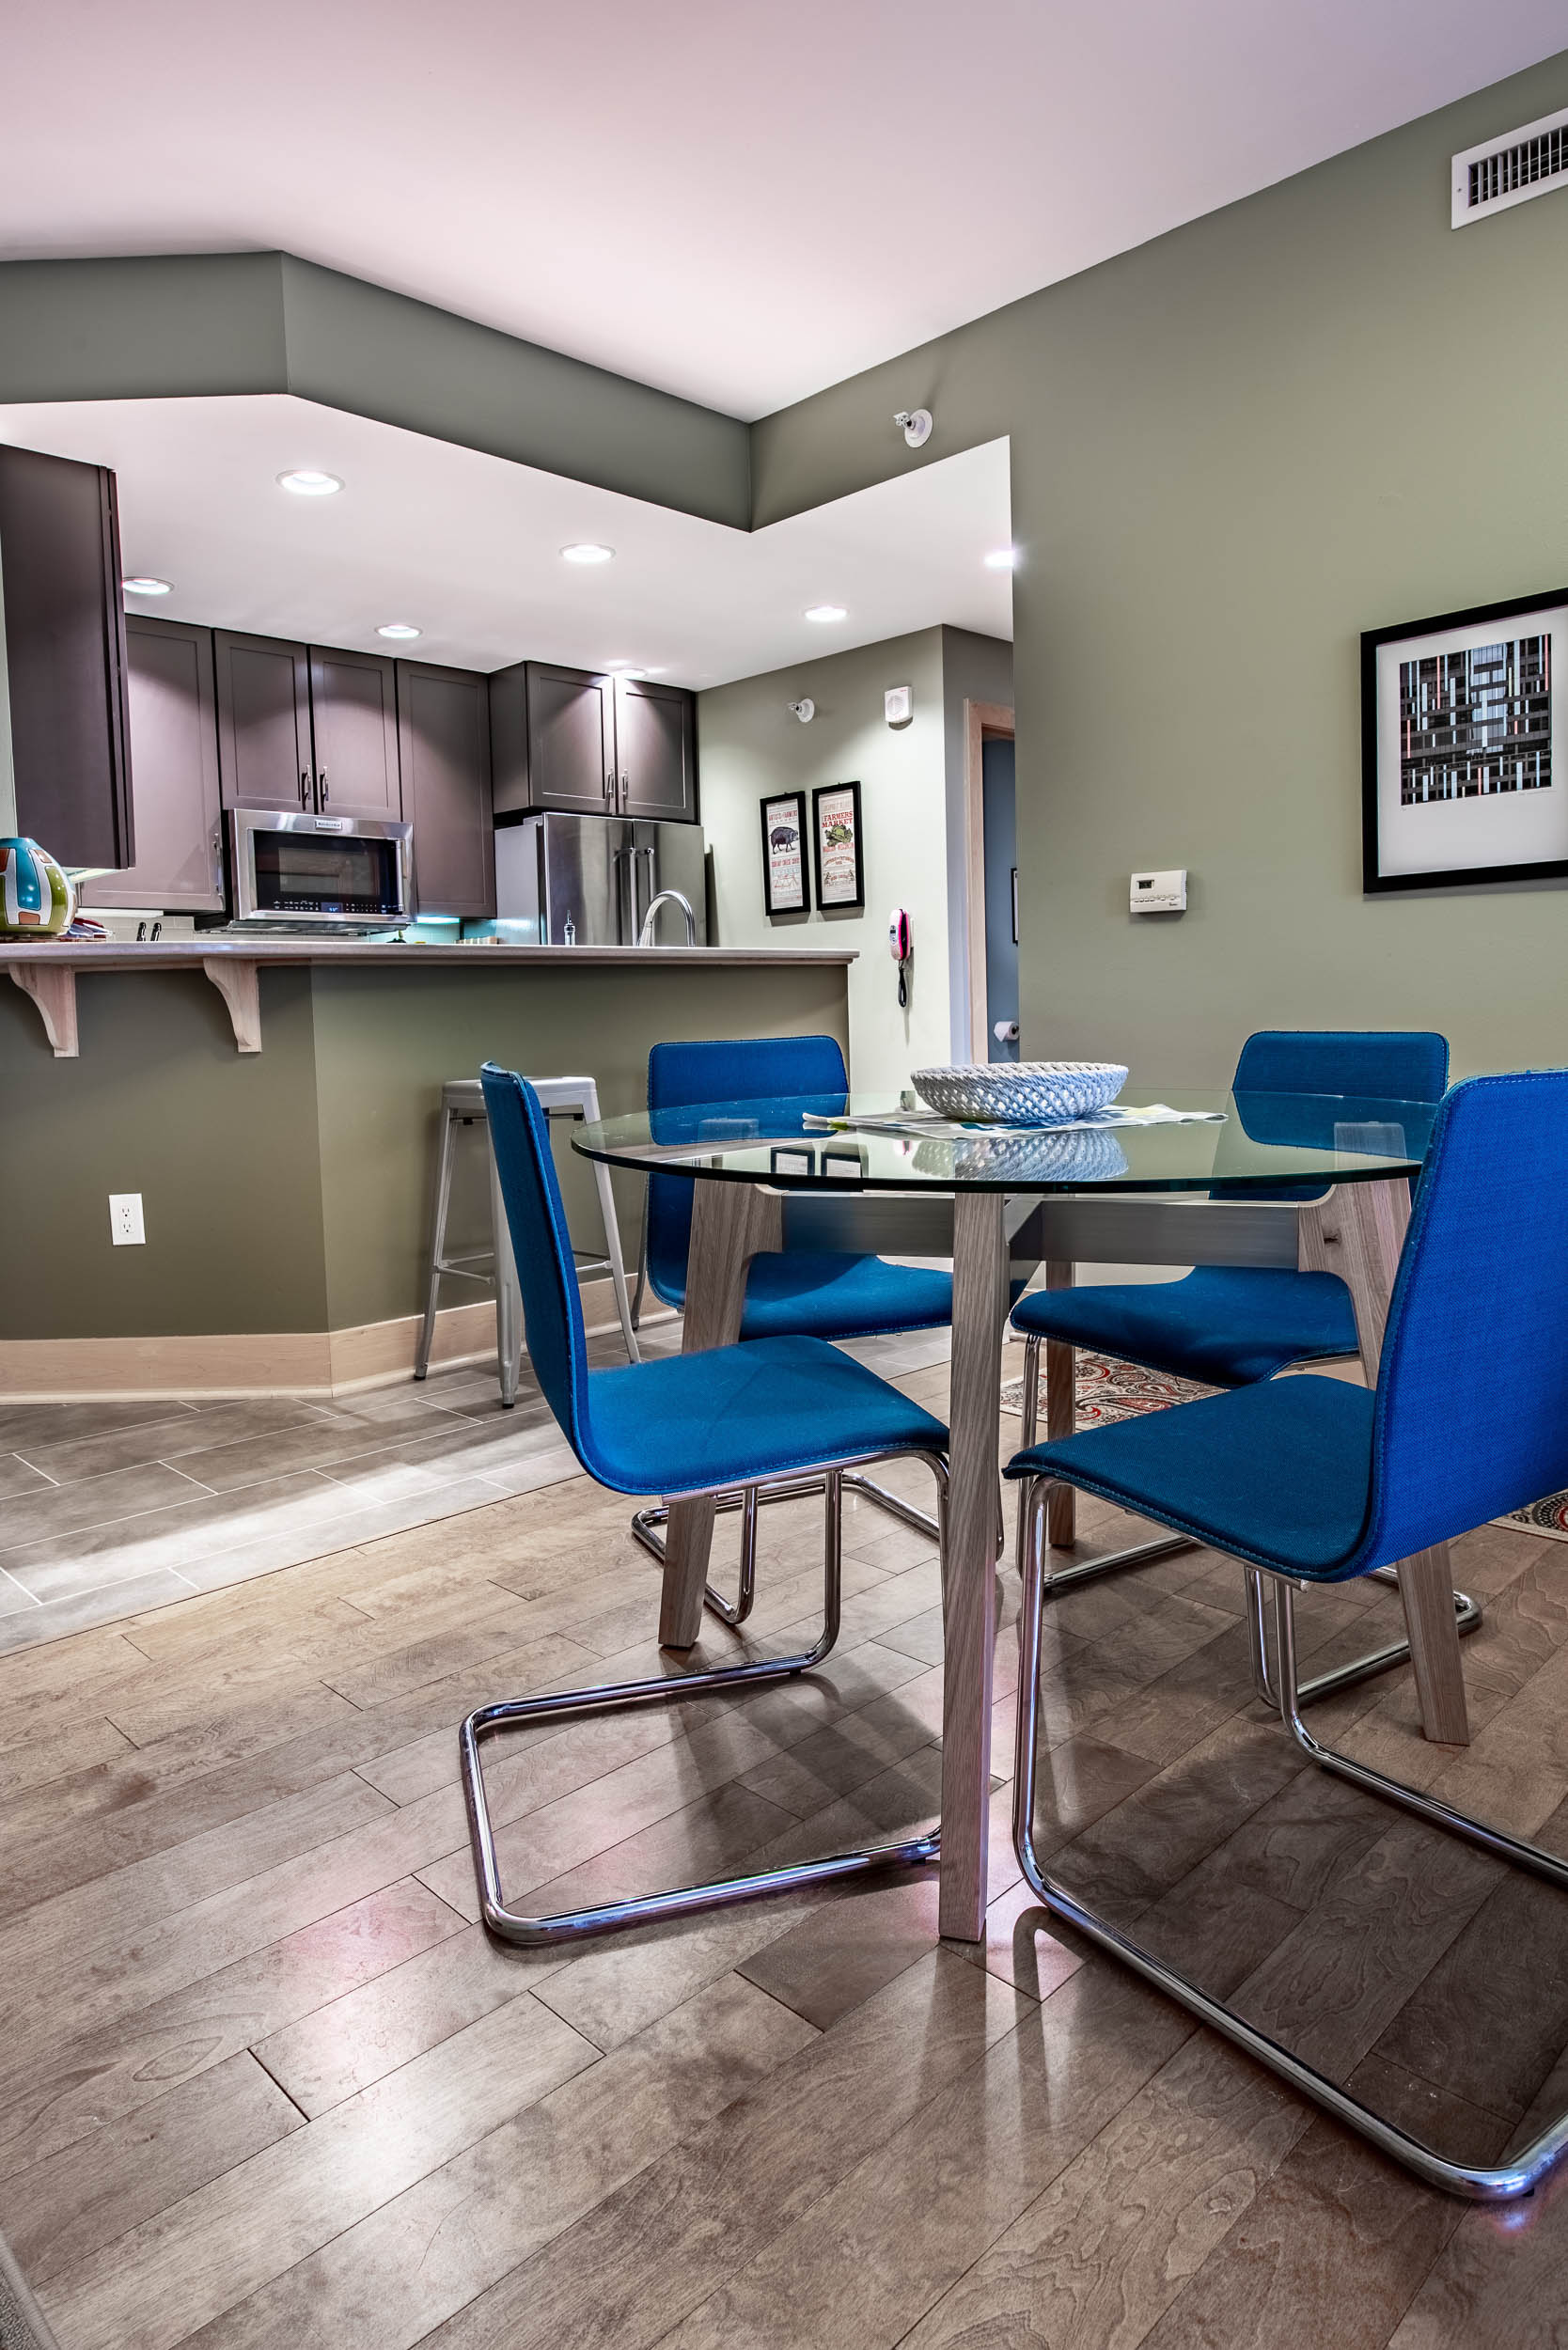 The kitchen paint colors include Sherwin Williams Sage, Avocado and High Reflective White for the ceiling.